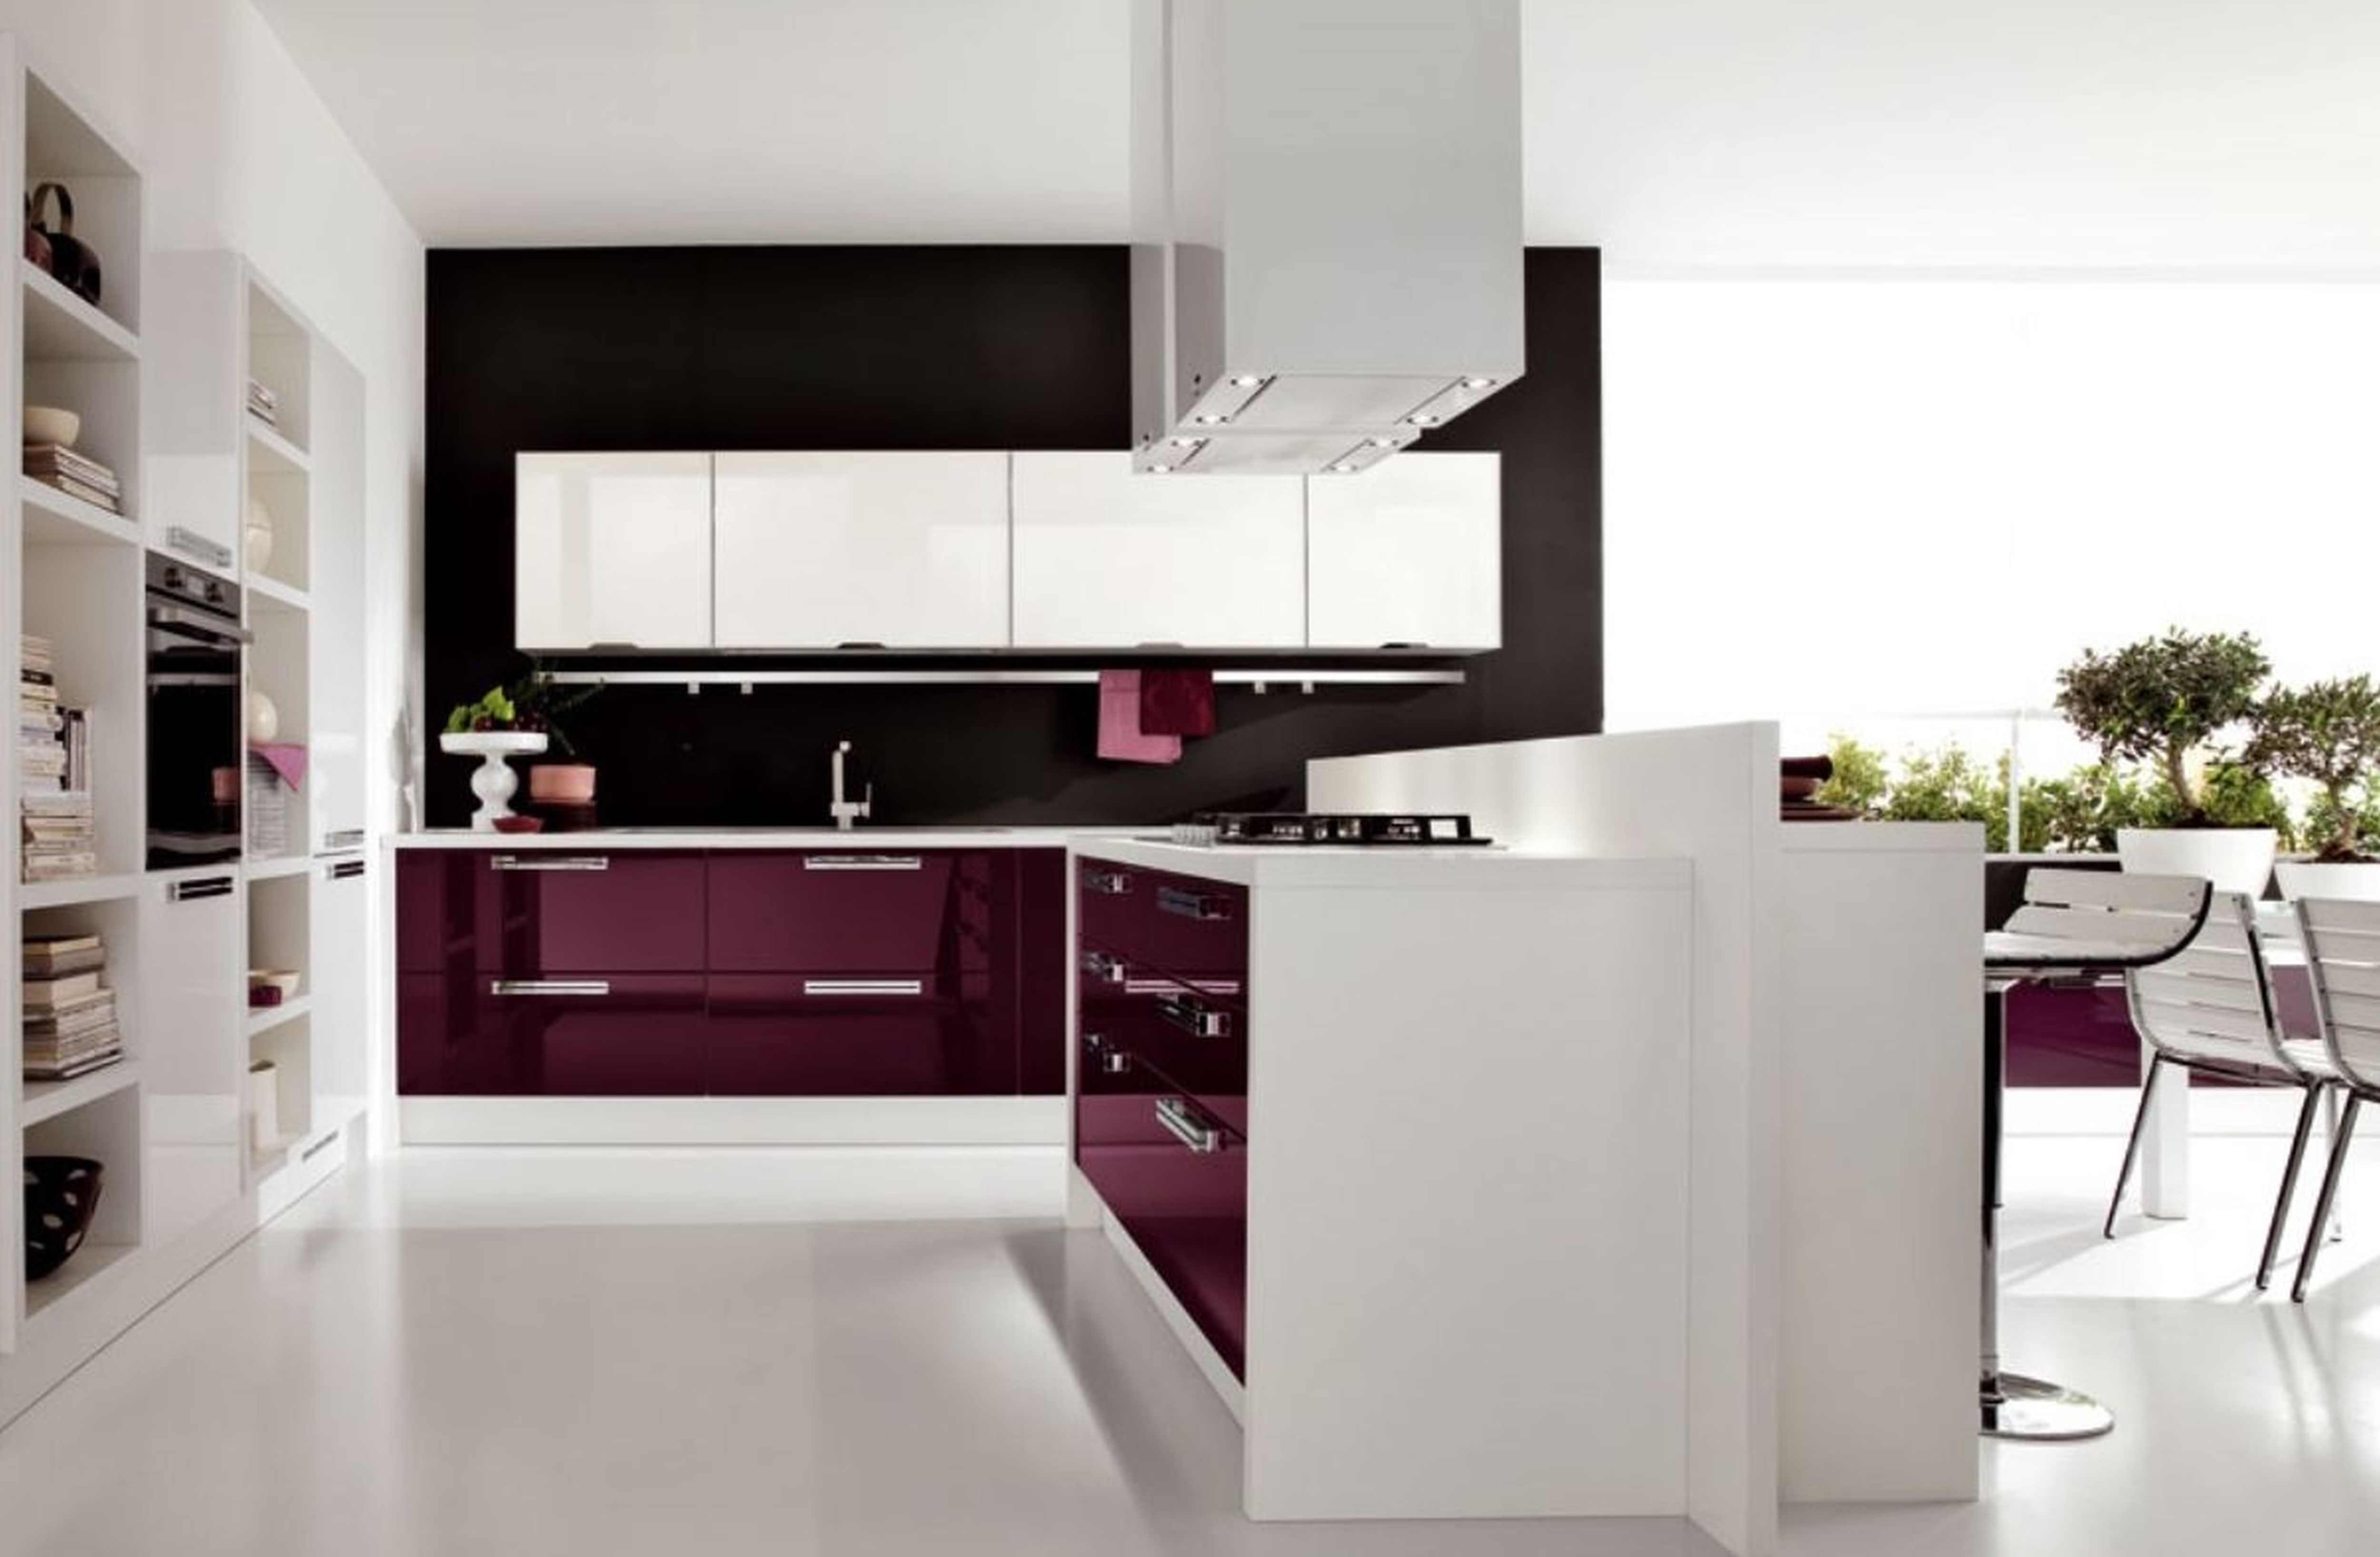 Interior design images good modern kitchen design gallery for Kitchen contemporary style